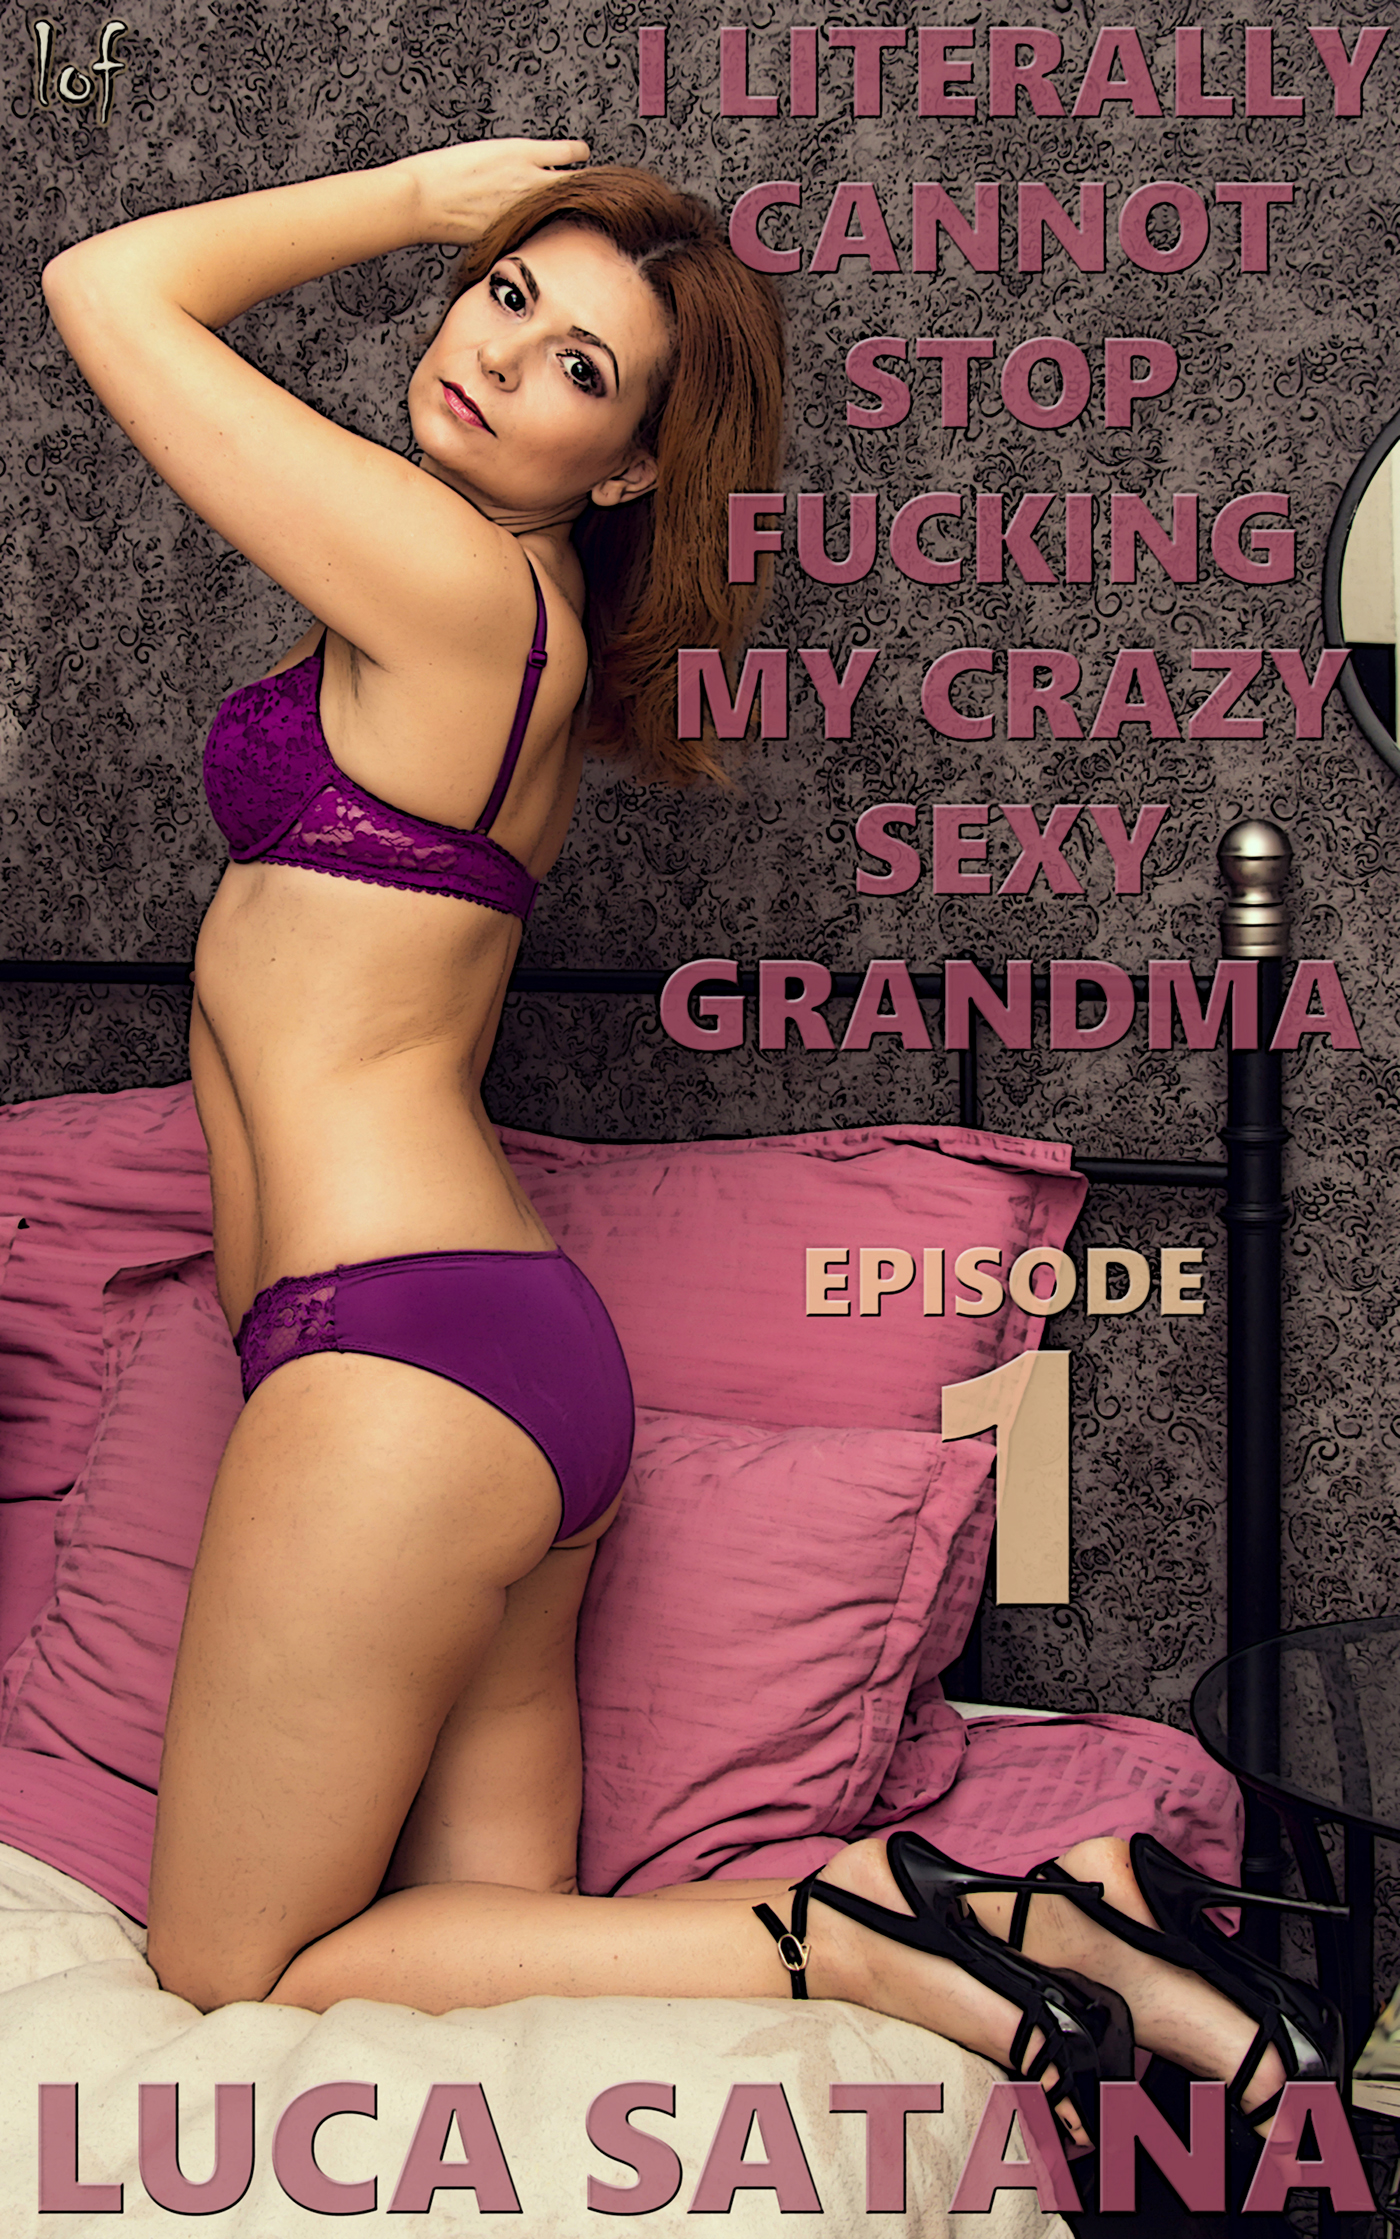 LOF Freebie: I Literally Cannot Stop Fucking My Crazy Sexy Grandma: Episode 1